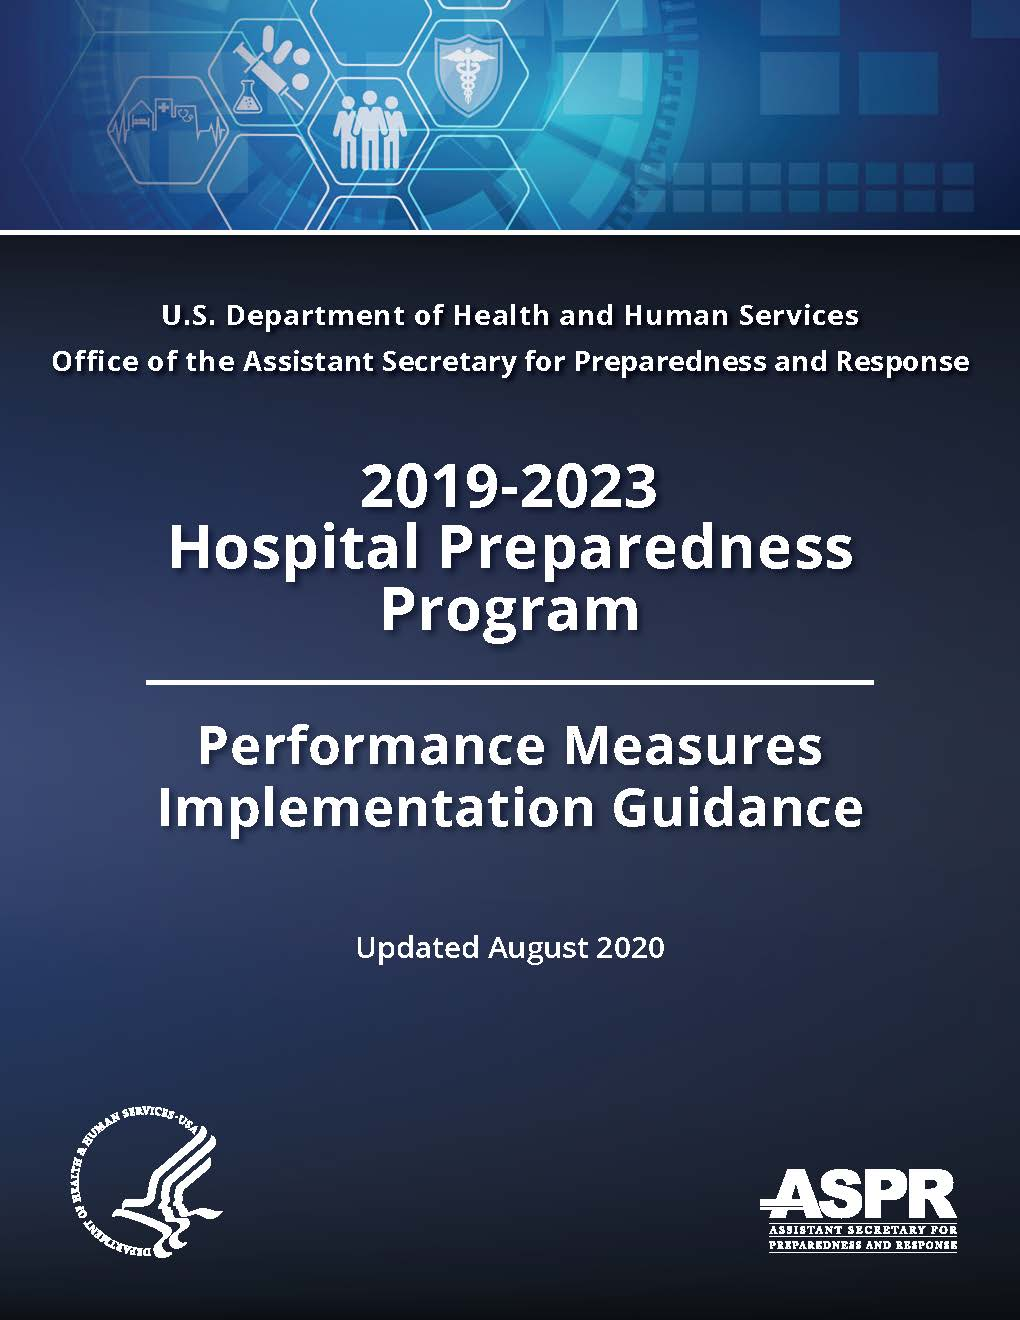 2019-2023 Hospital Preparedness Program Performance Measures Implementation Guidance - Updated August 2020